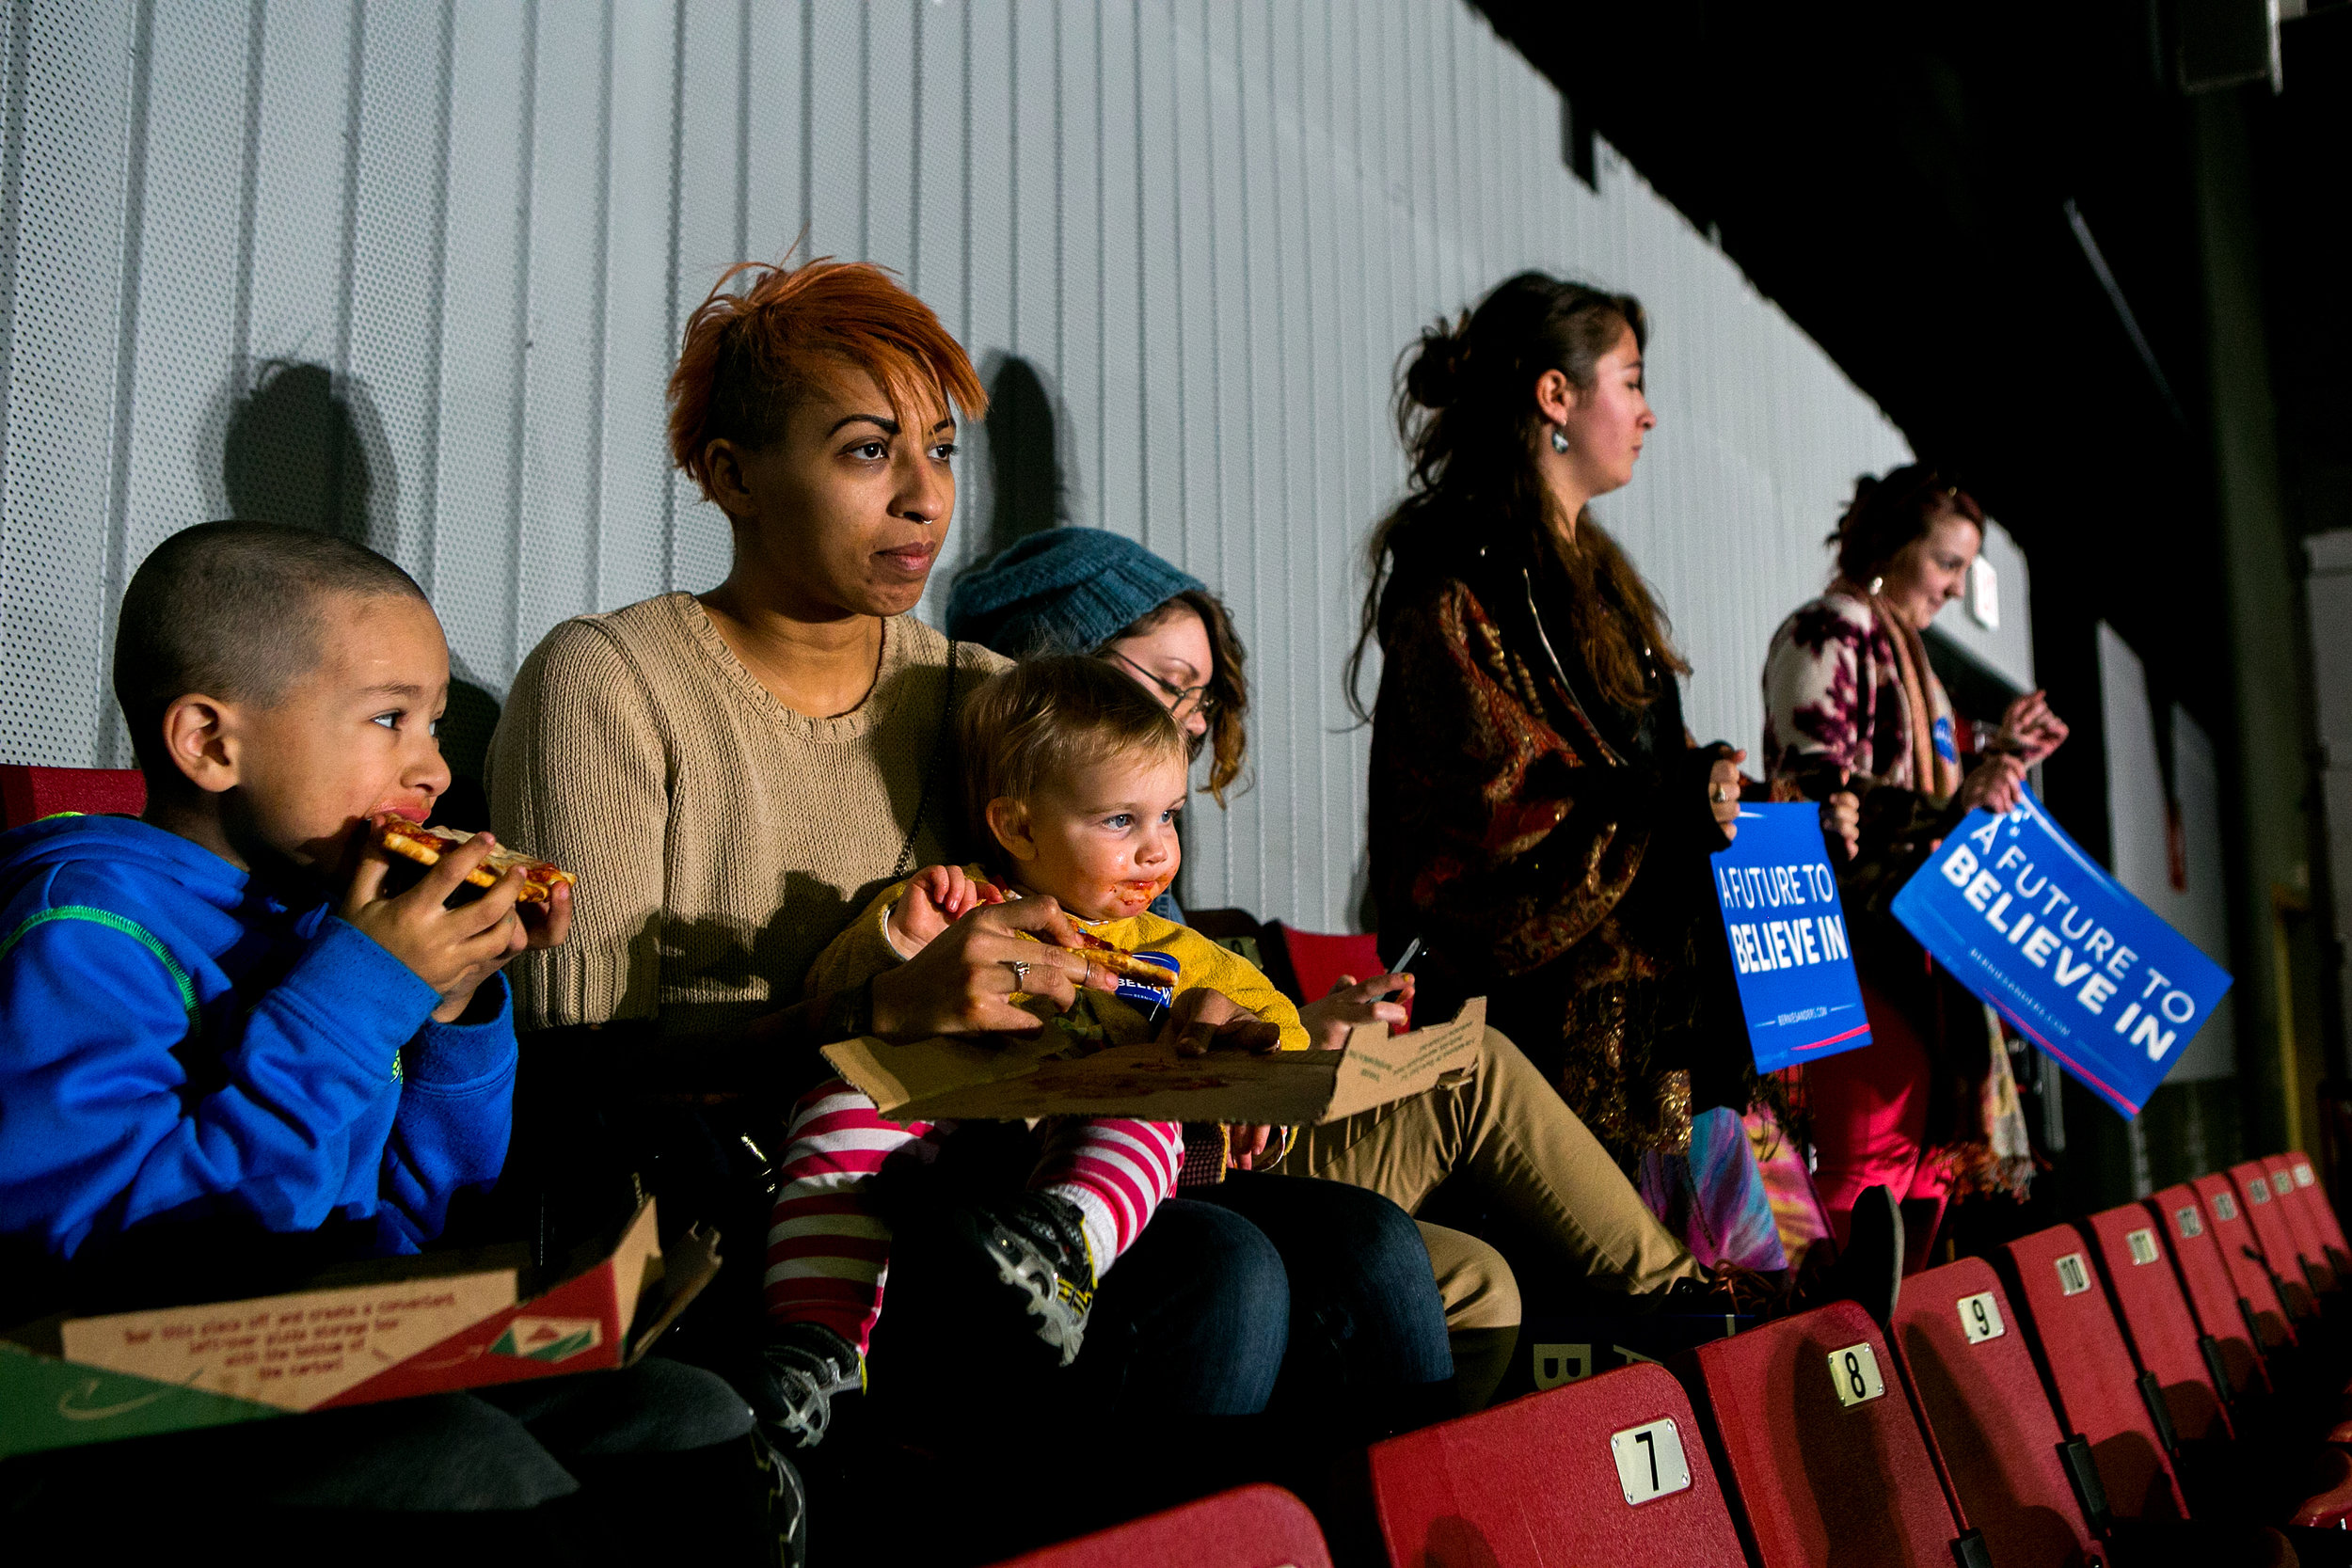 Alexis Parent feeds pizza to her friend's son as they wait for Bernie to speak at a rally in Amherst, Massachusetts.